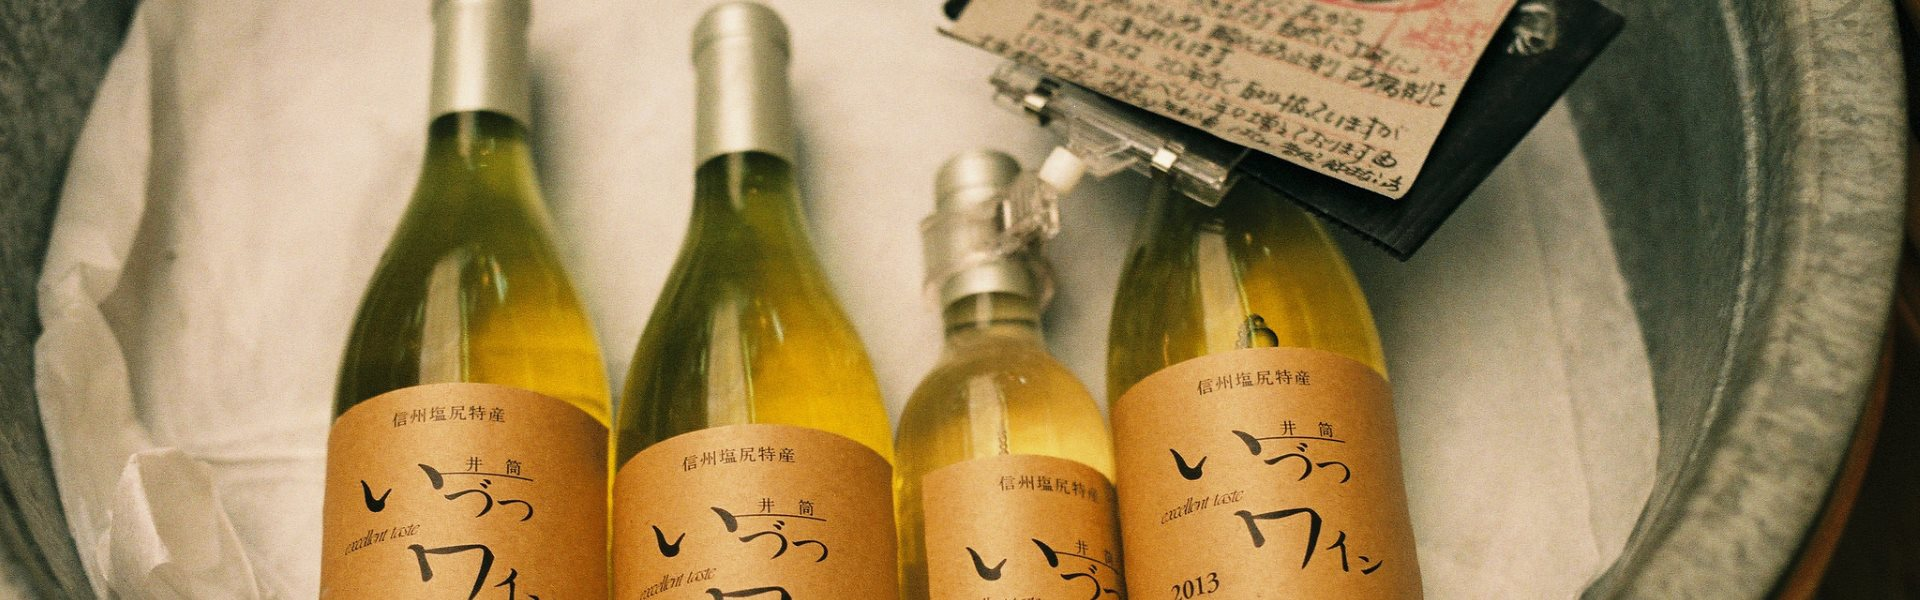 Bottles of Japanese wine